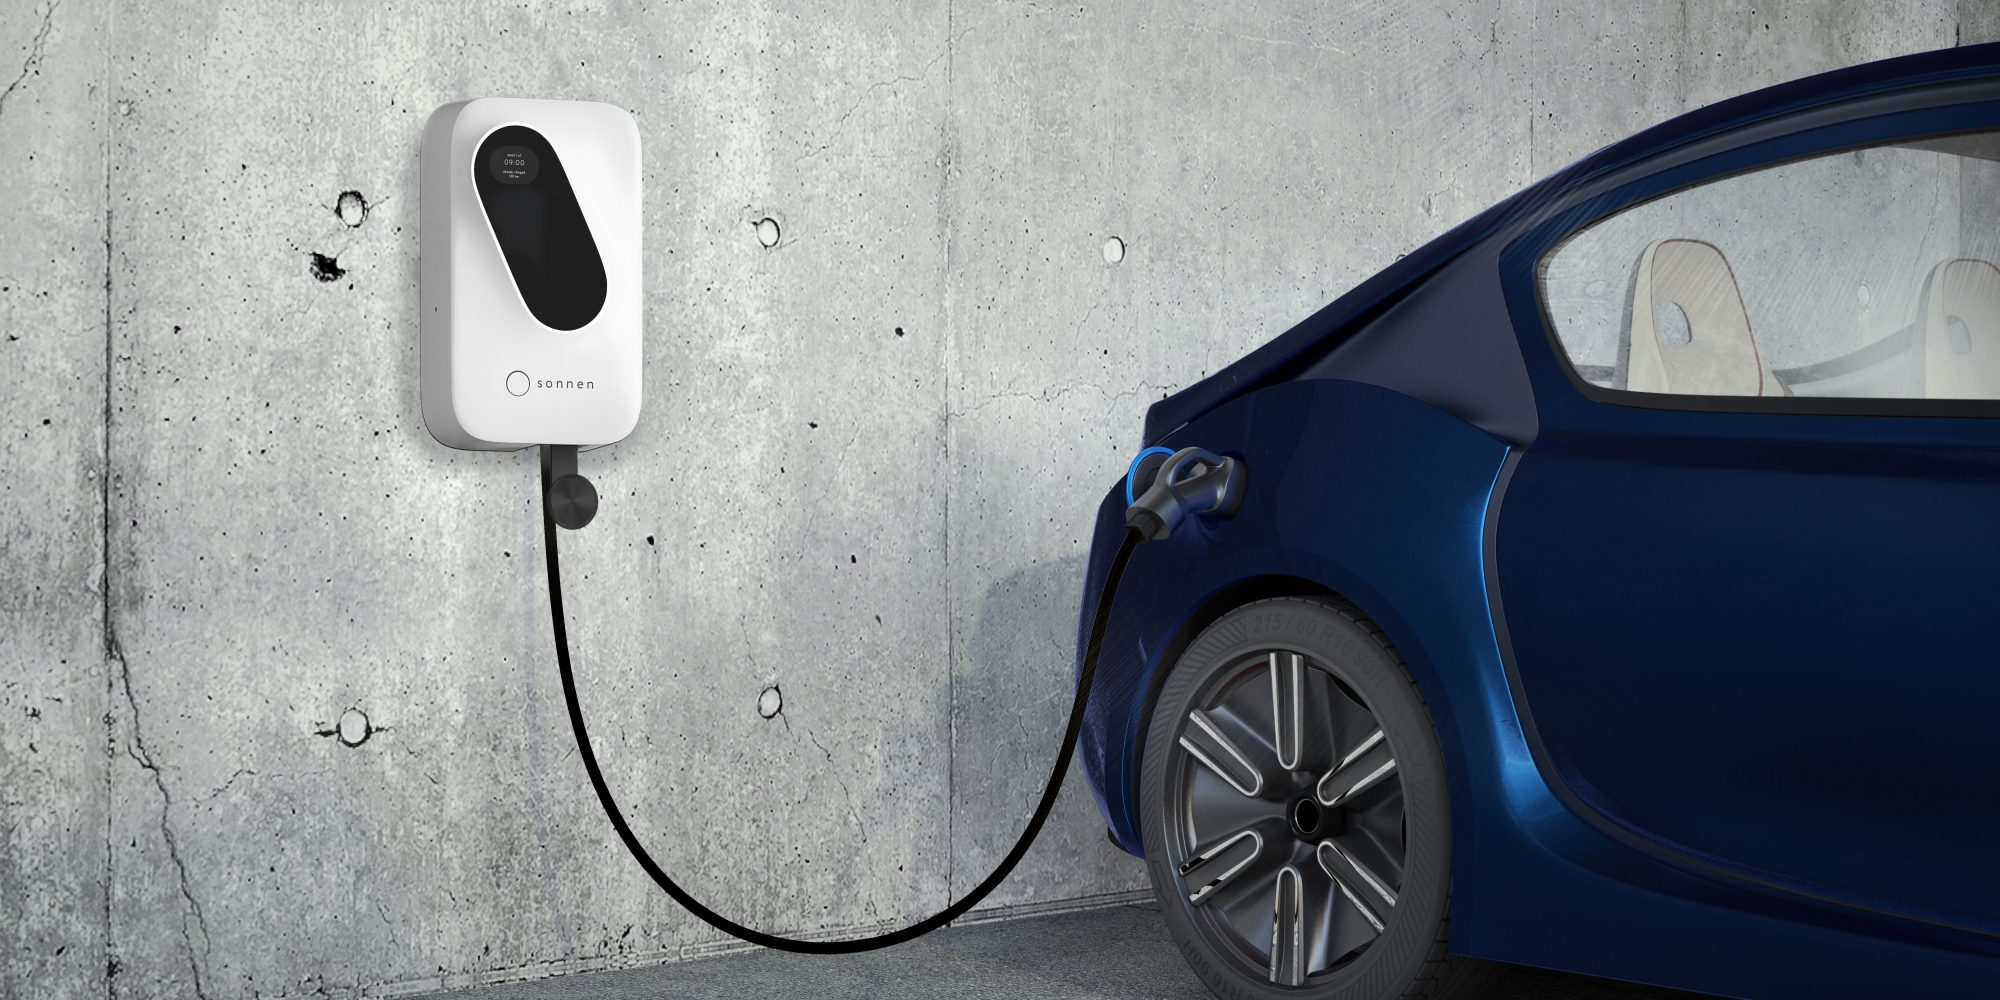 The sonnen EV Car Charger